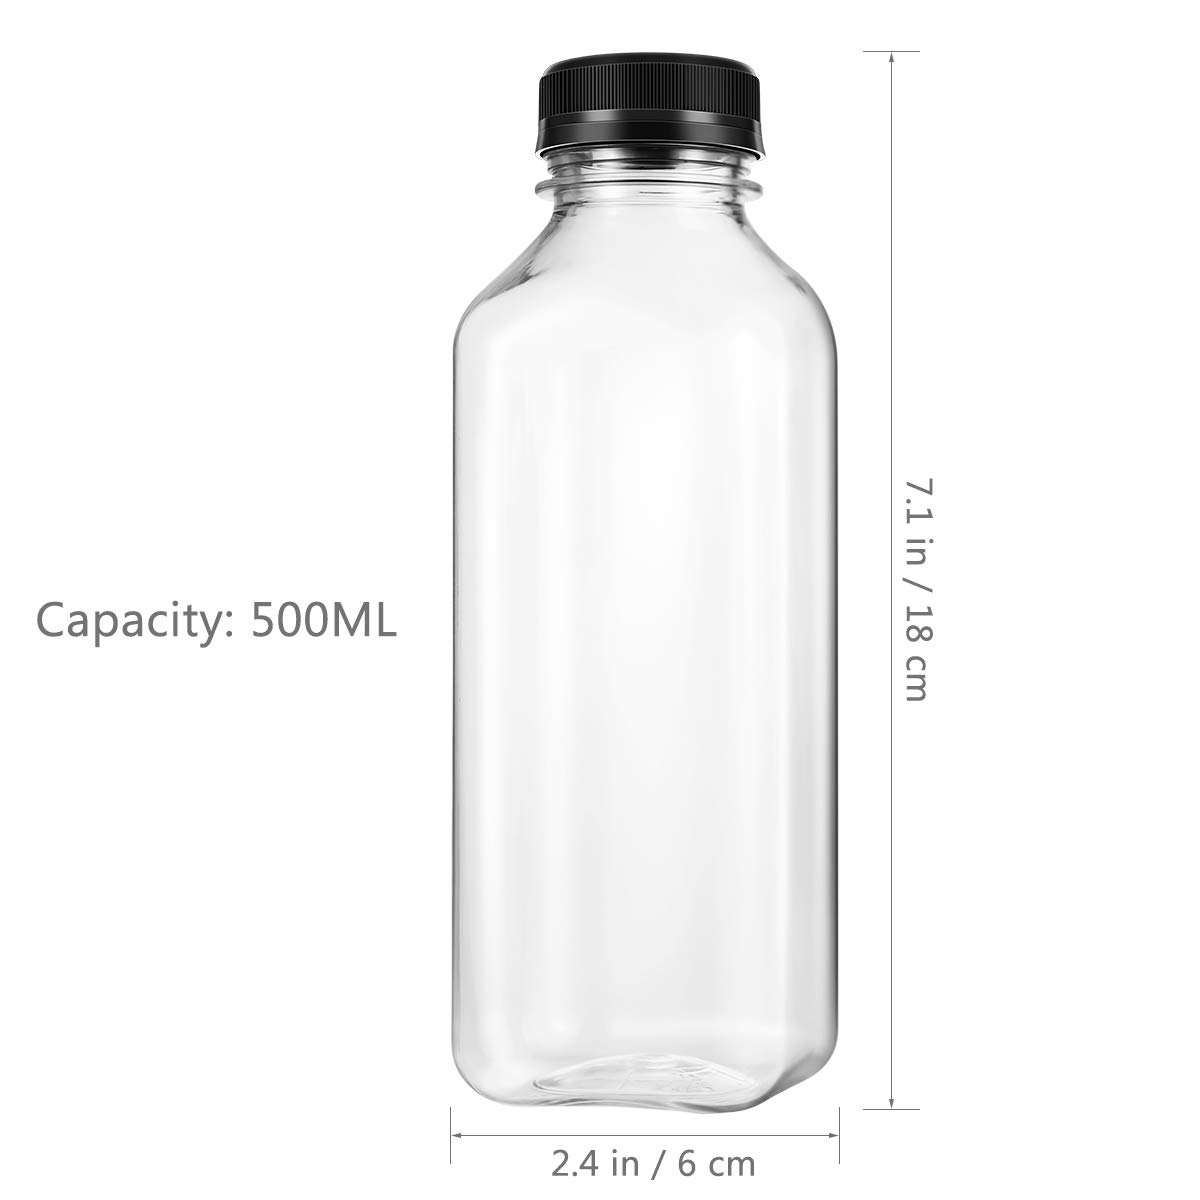 UKCOCO PET plastic empty storage containers for juice drinking bottles with lid with black screw caps 4 pcs